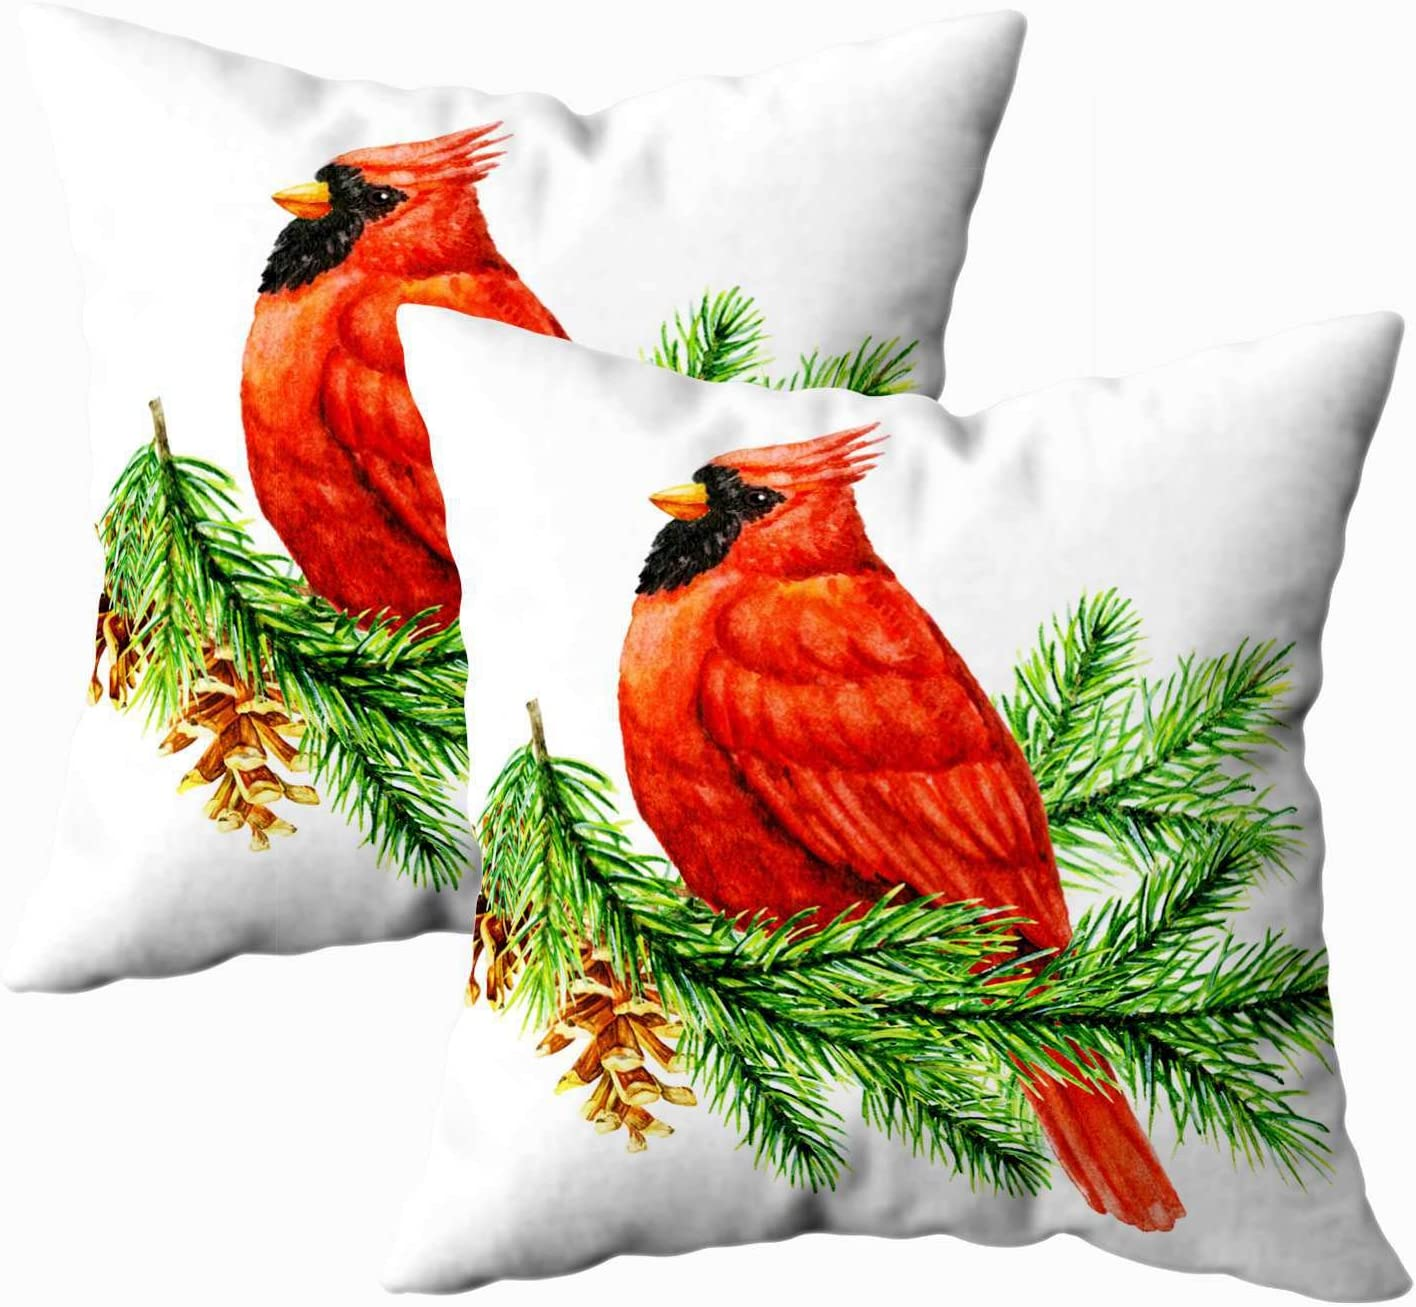 Amazon Com Bisead Sofa Pillows Square Pillow Cases Pack Of 2 18x18inch Red Cardinal Bird Pine Winter Christmas Painted Greeting Card On White Background Throw Pillow Case Cushion Cover Clear Green Home Kitchen